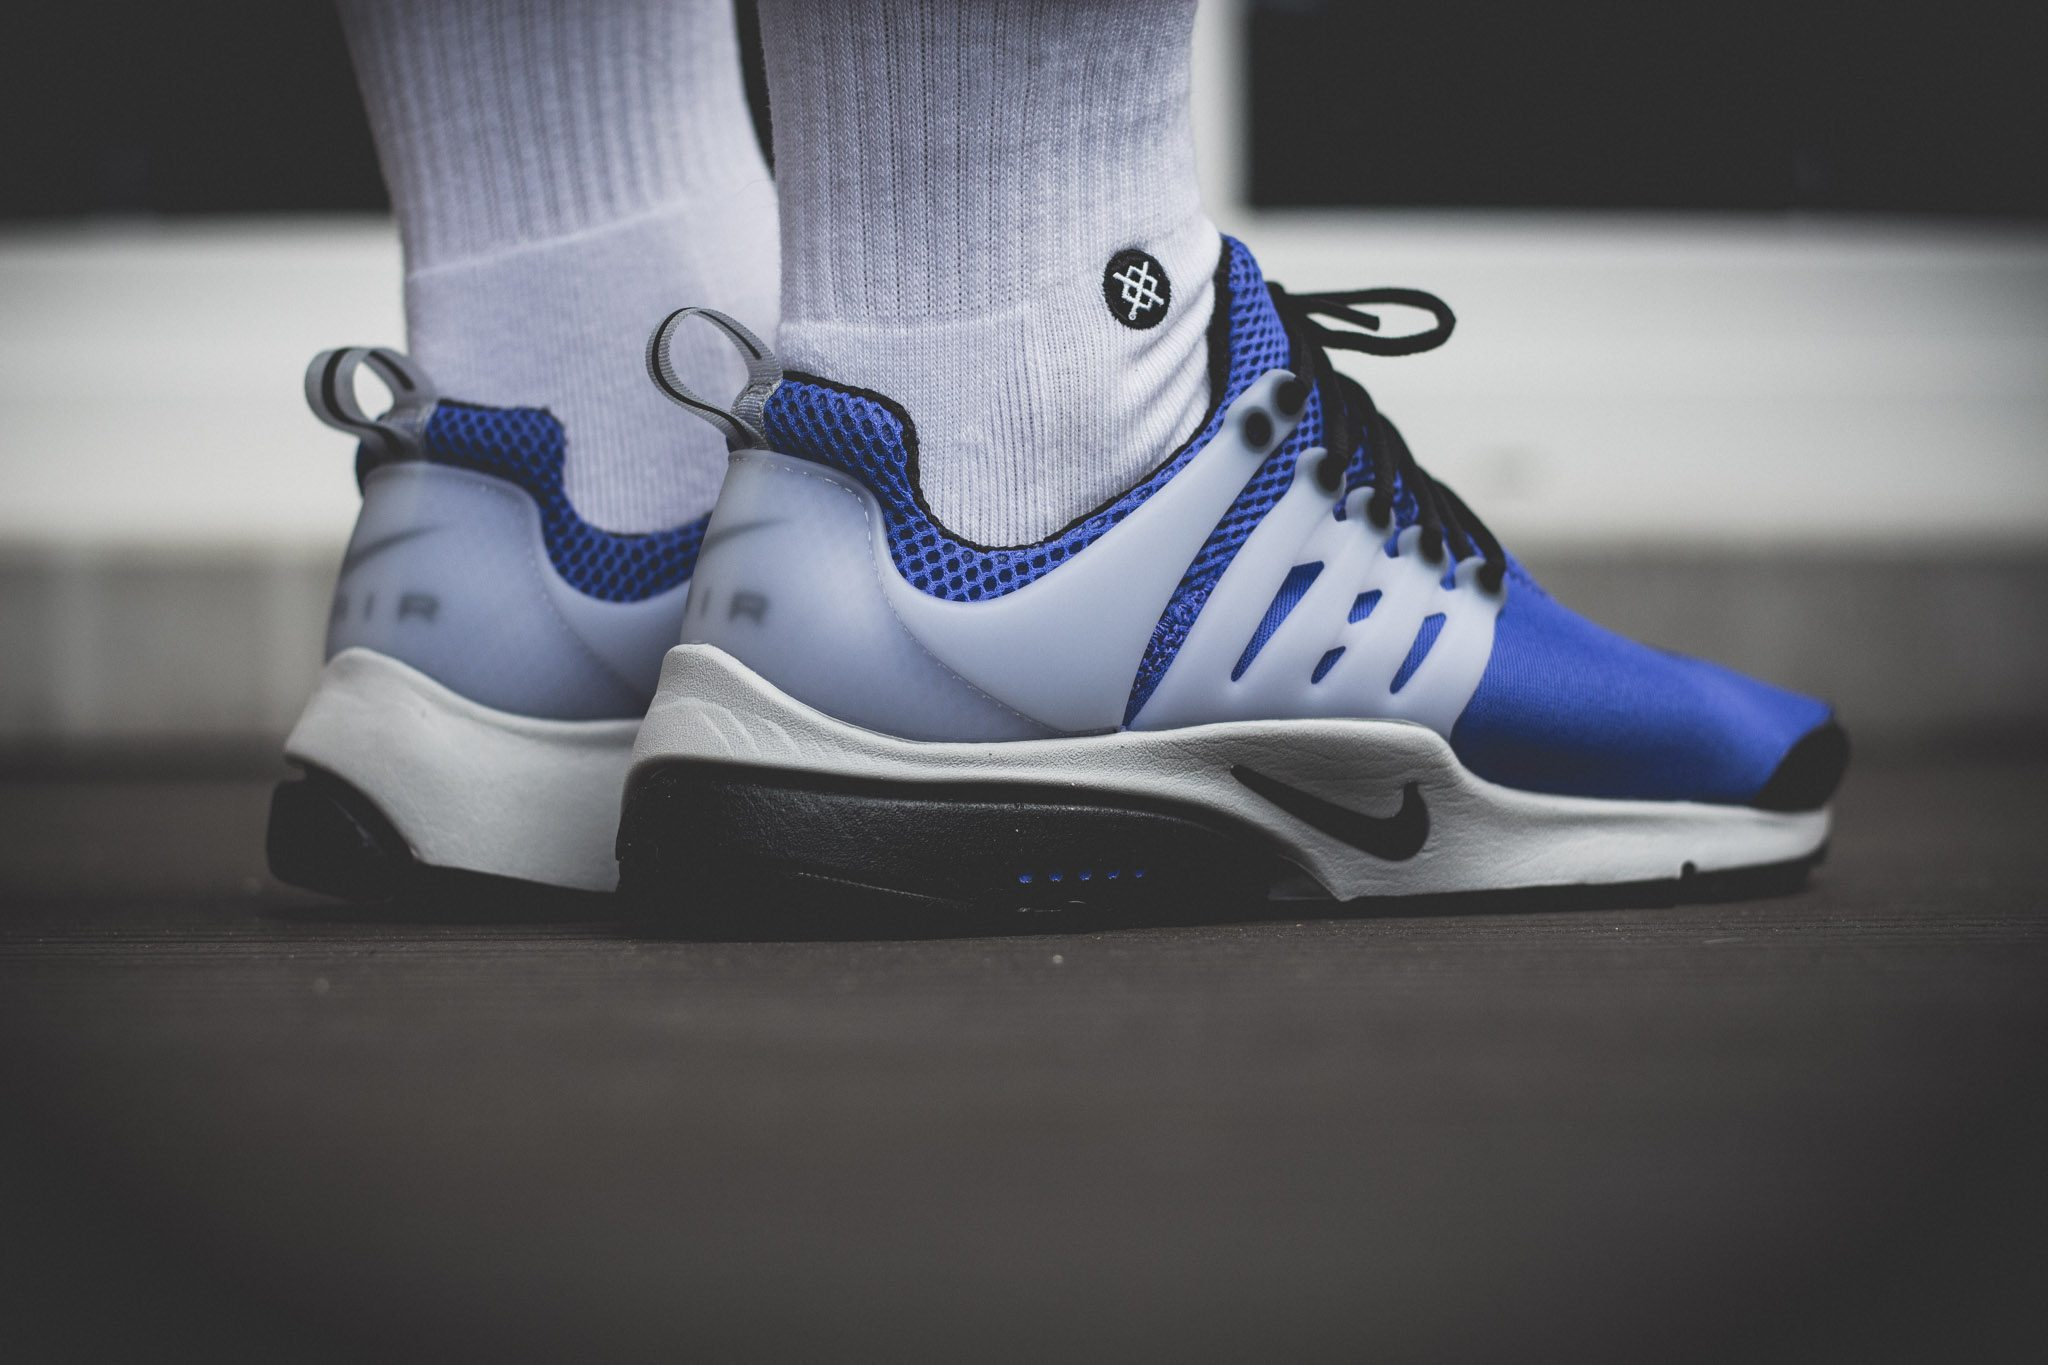 Nike Air Presto Persion Violet On Feet 8